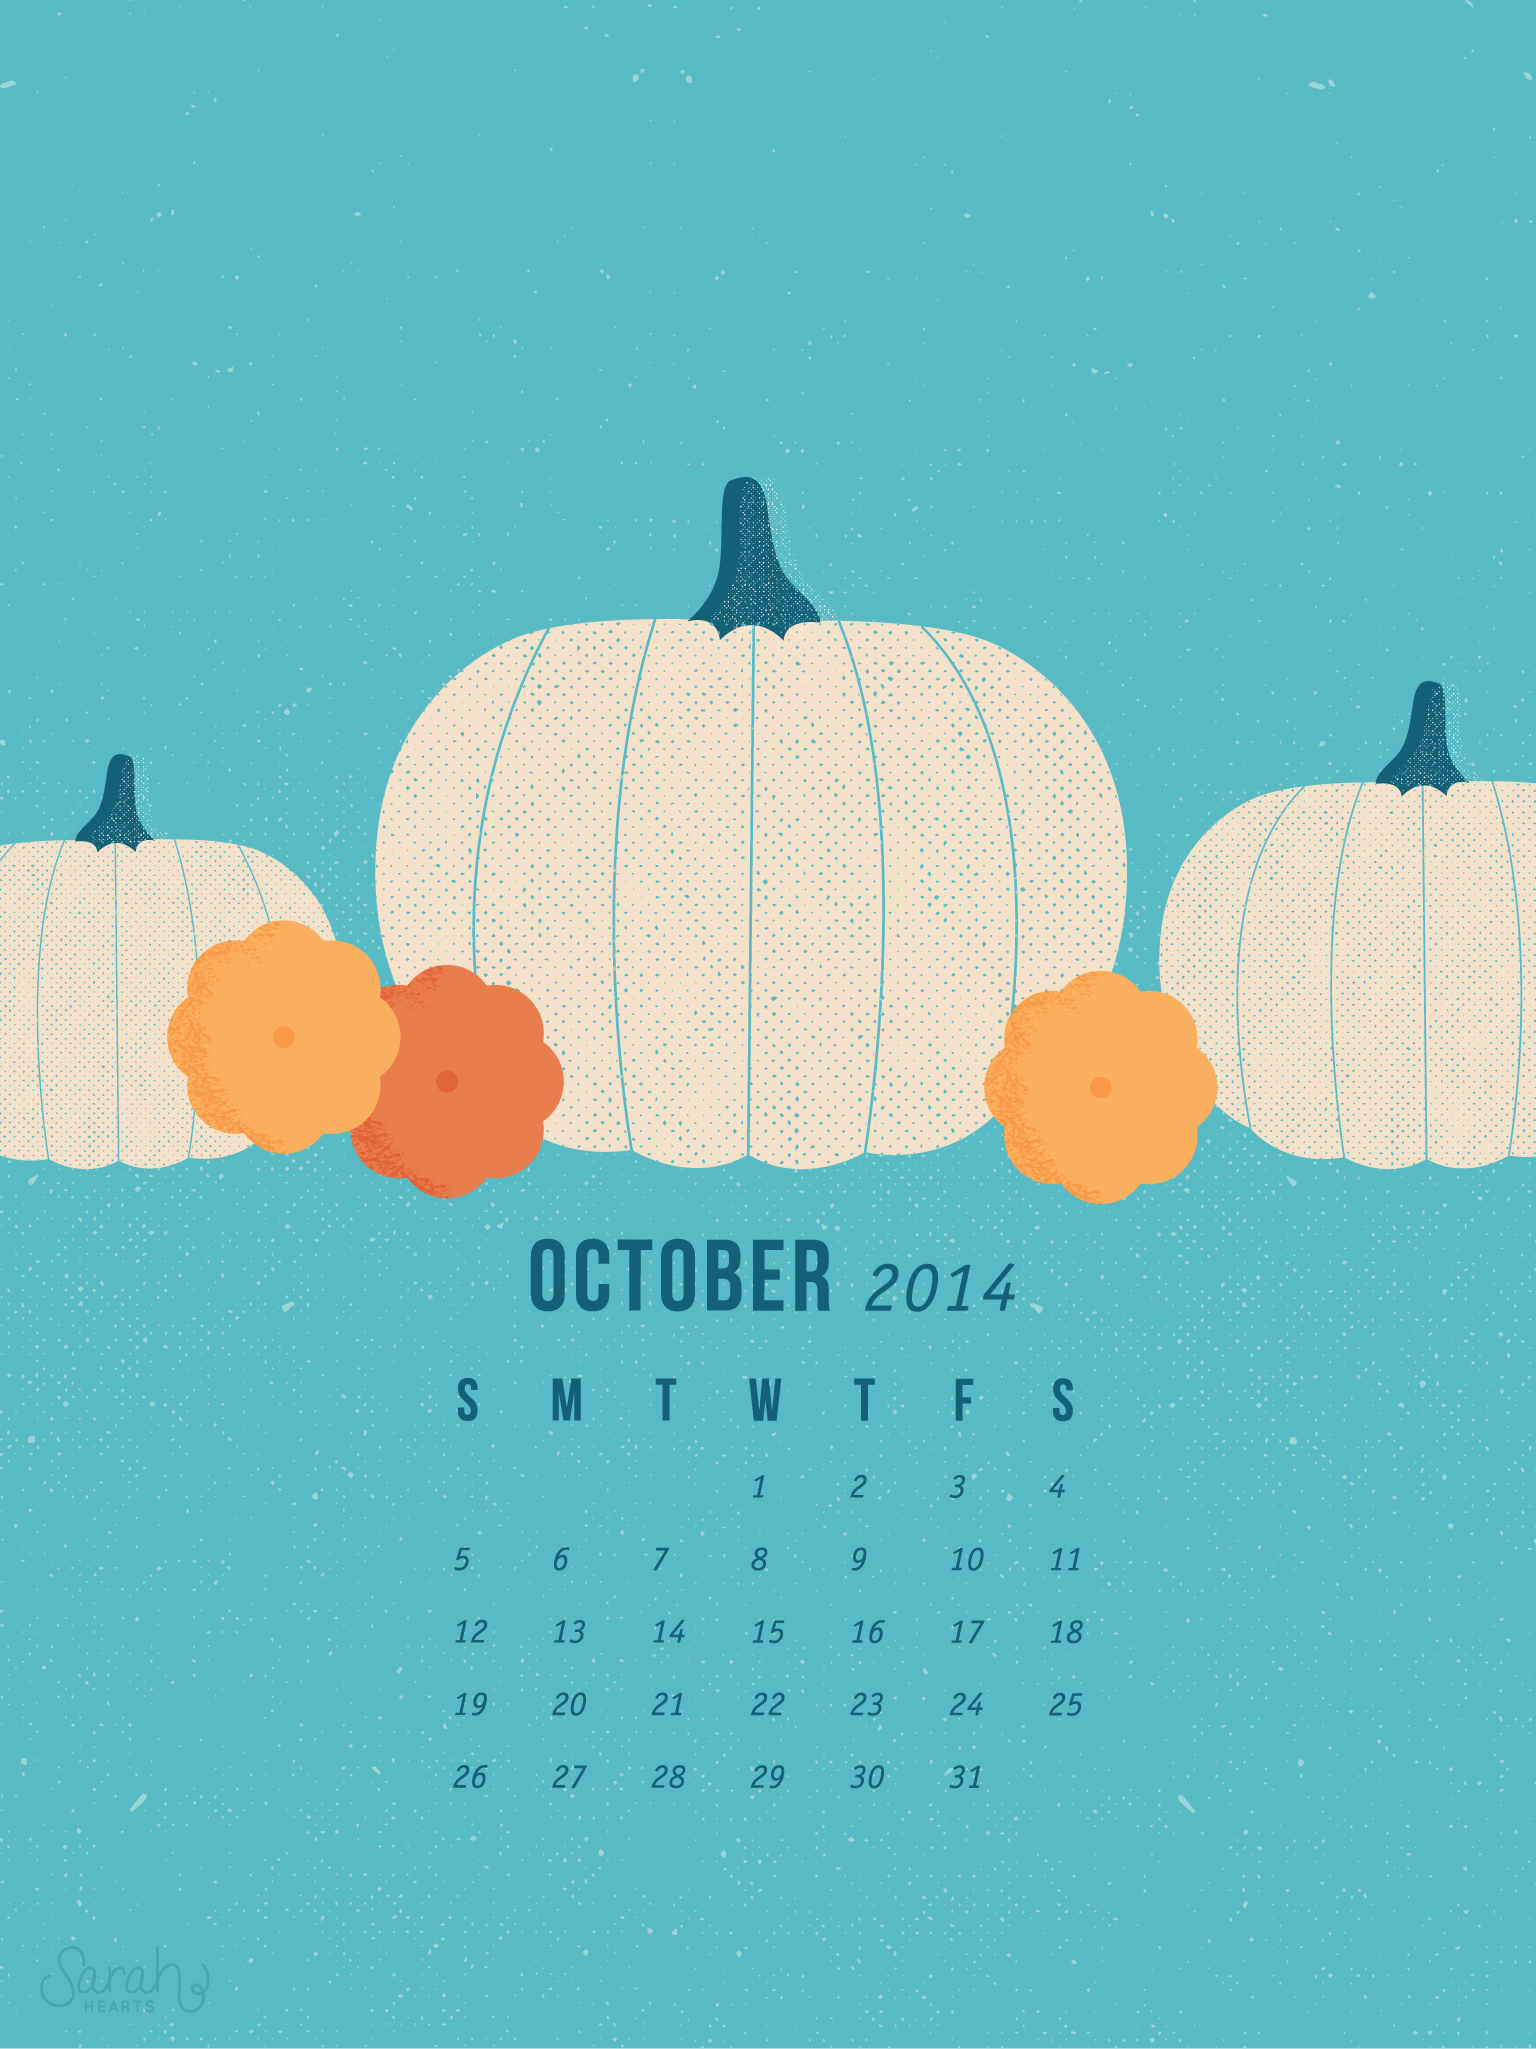 Pumpkin Fall Iphone Wallpaper October 2014 Calendar Wallpapers Sarah Hearts